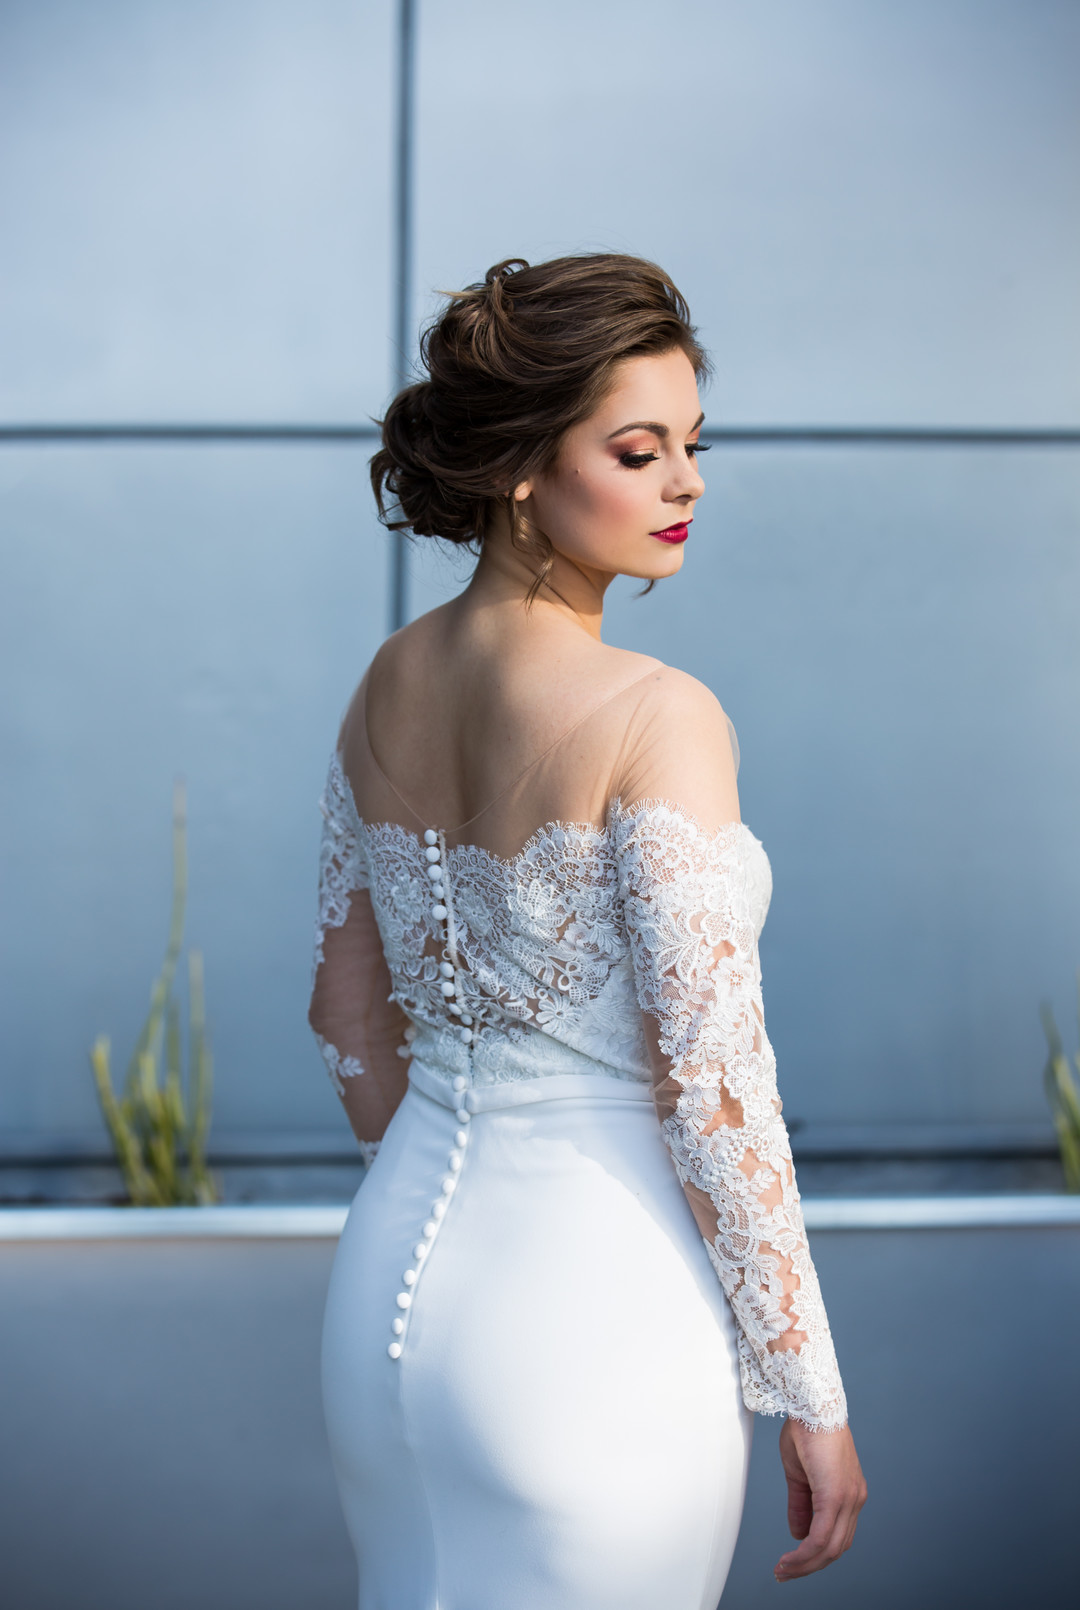 fitted wedding dress with lace and back buttons